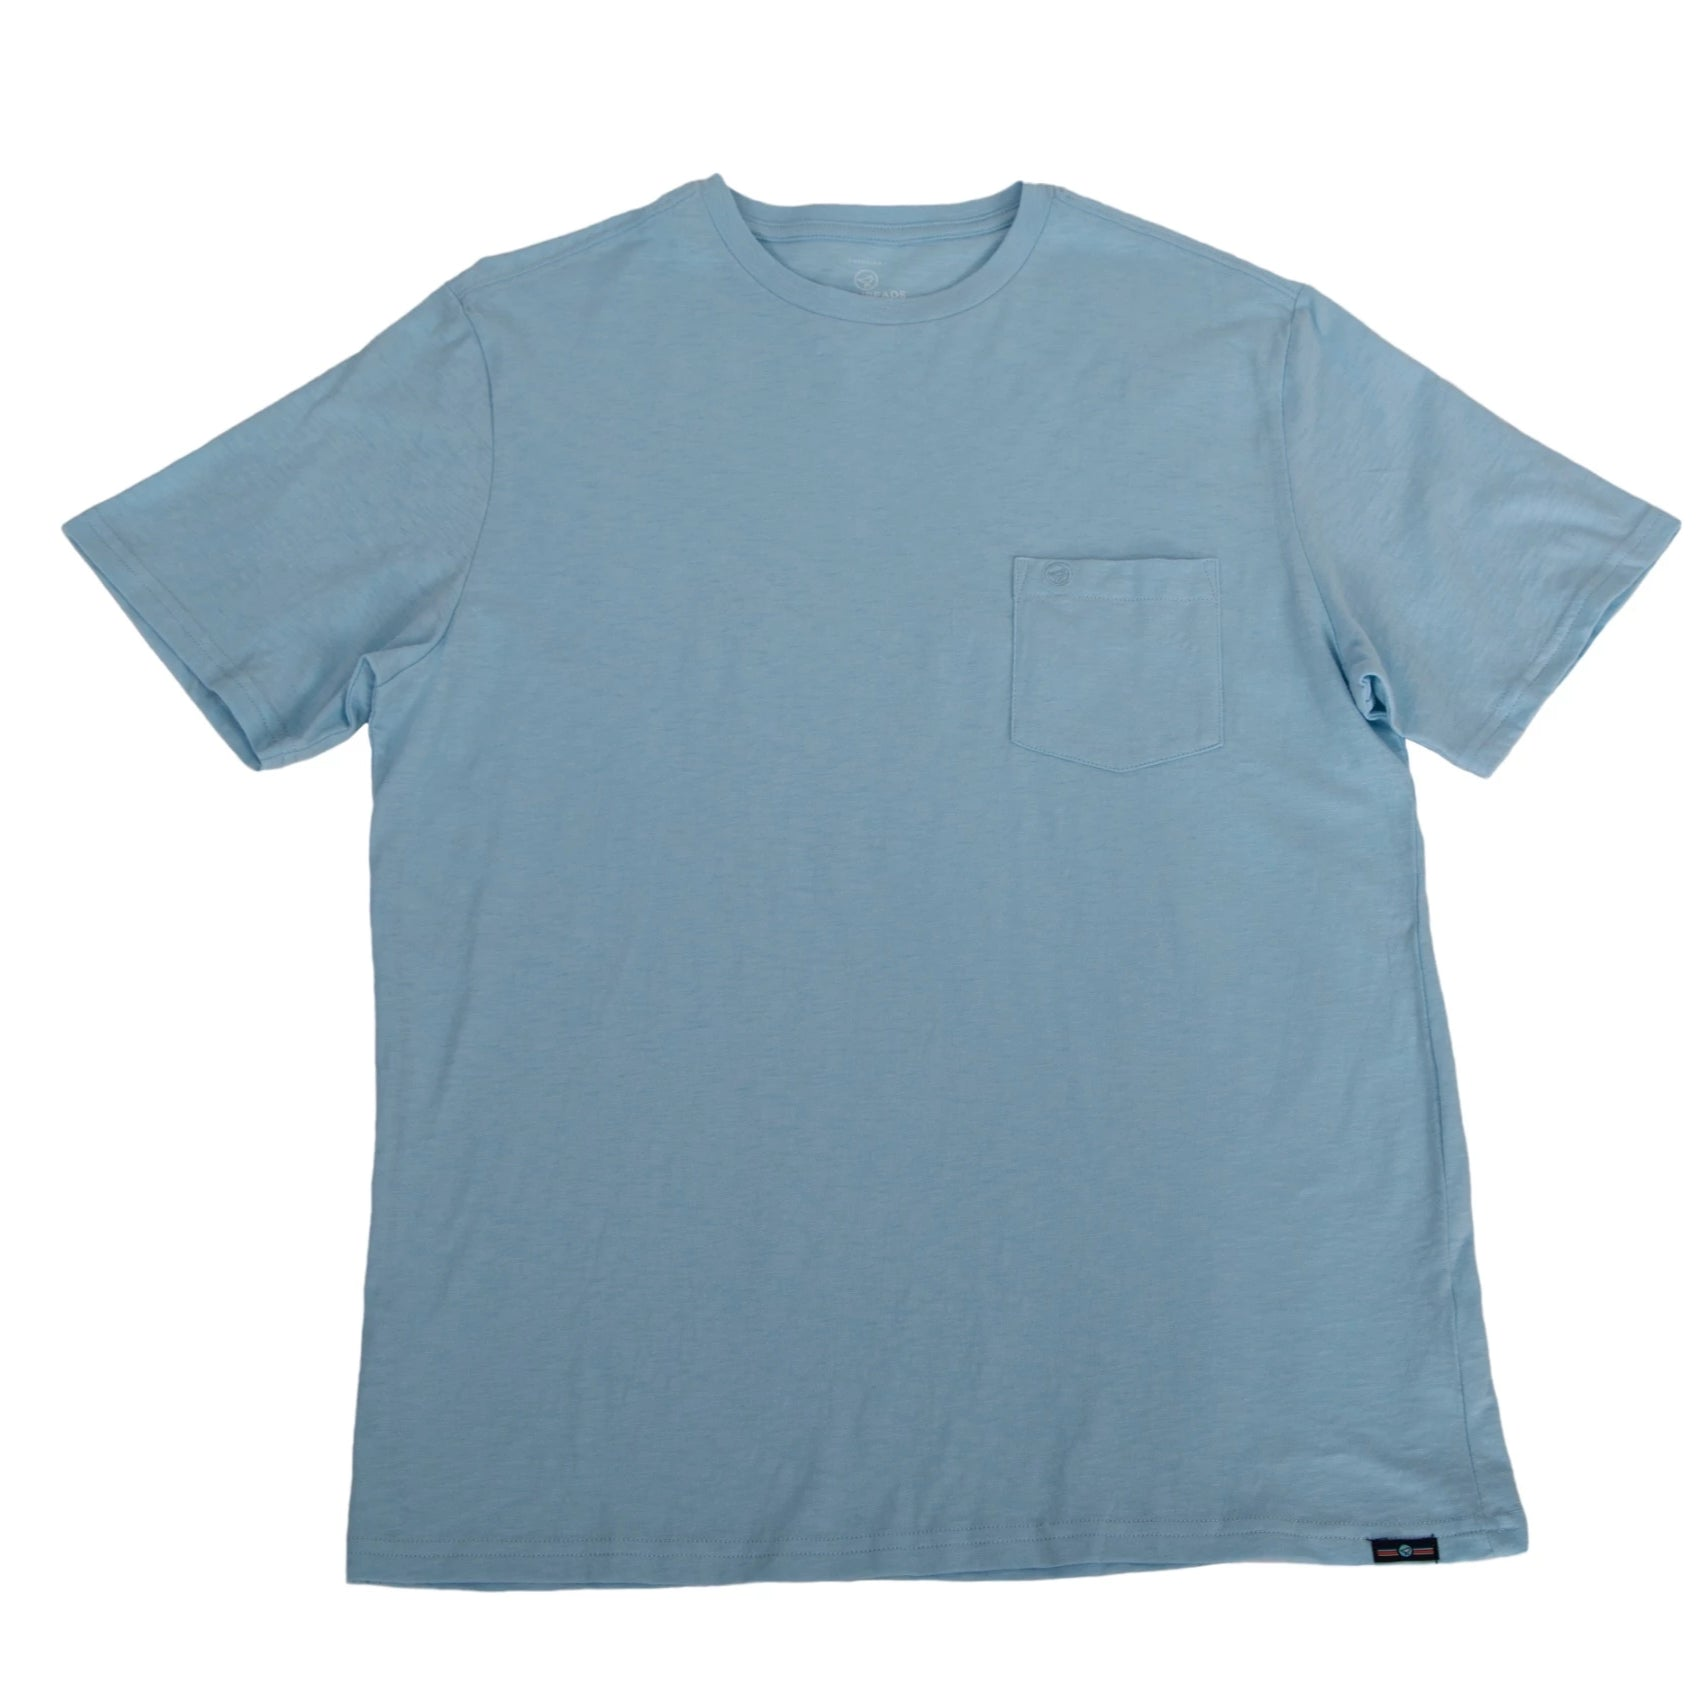 BE-COOL TEE LIGHT BLUE